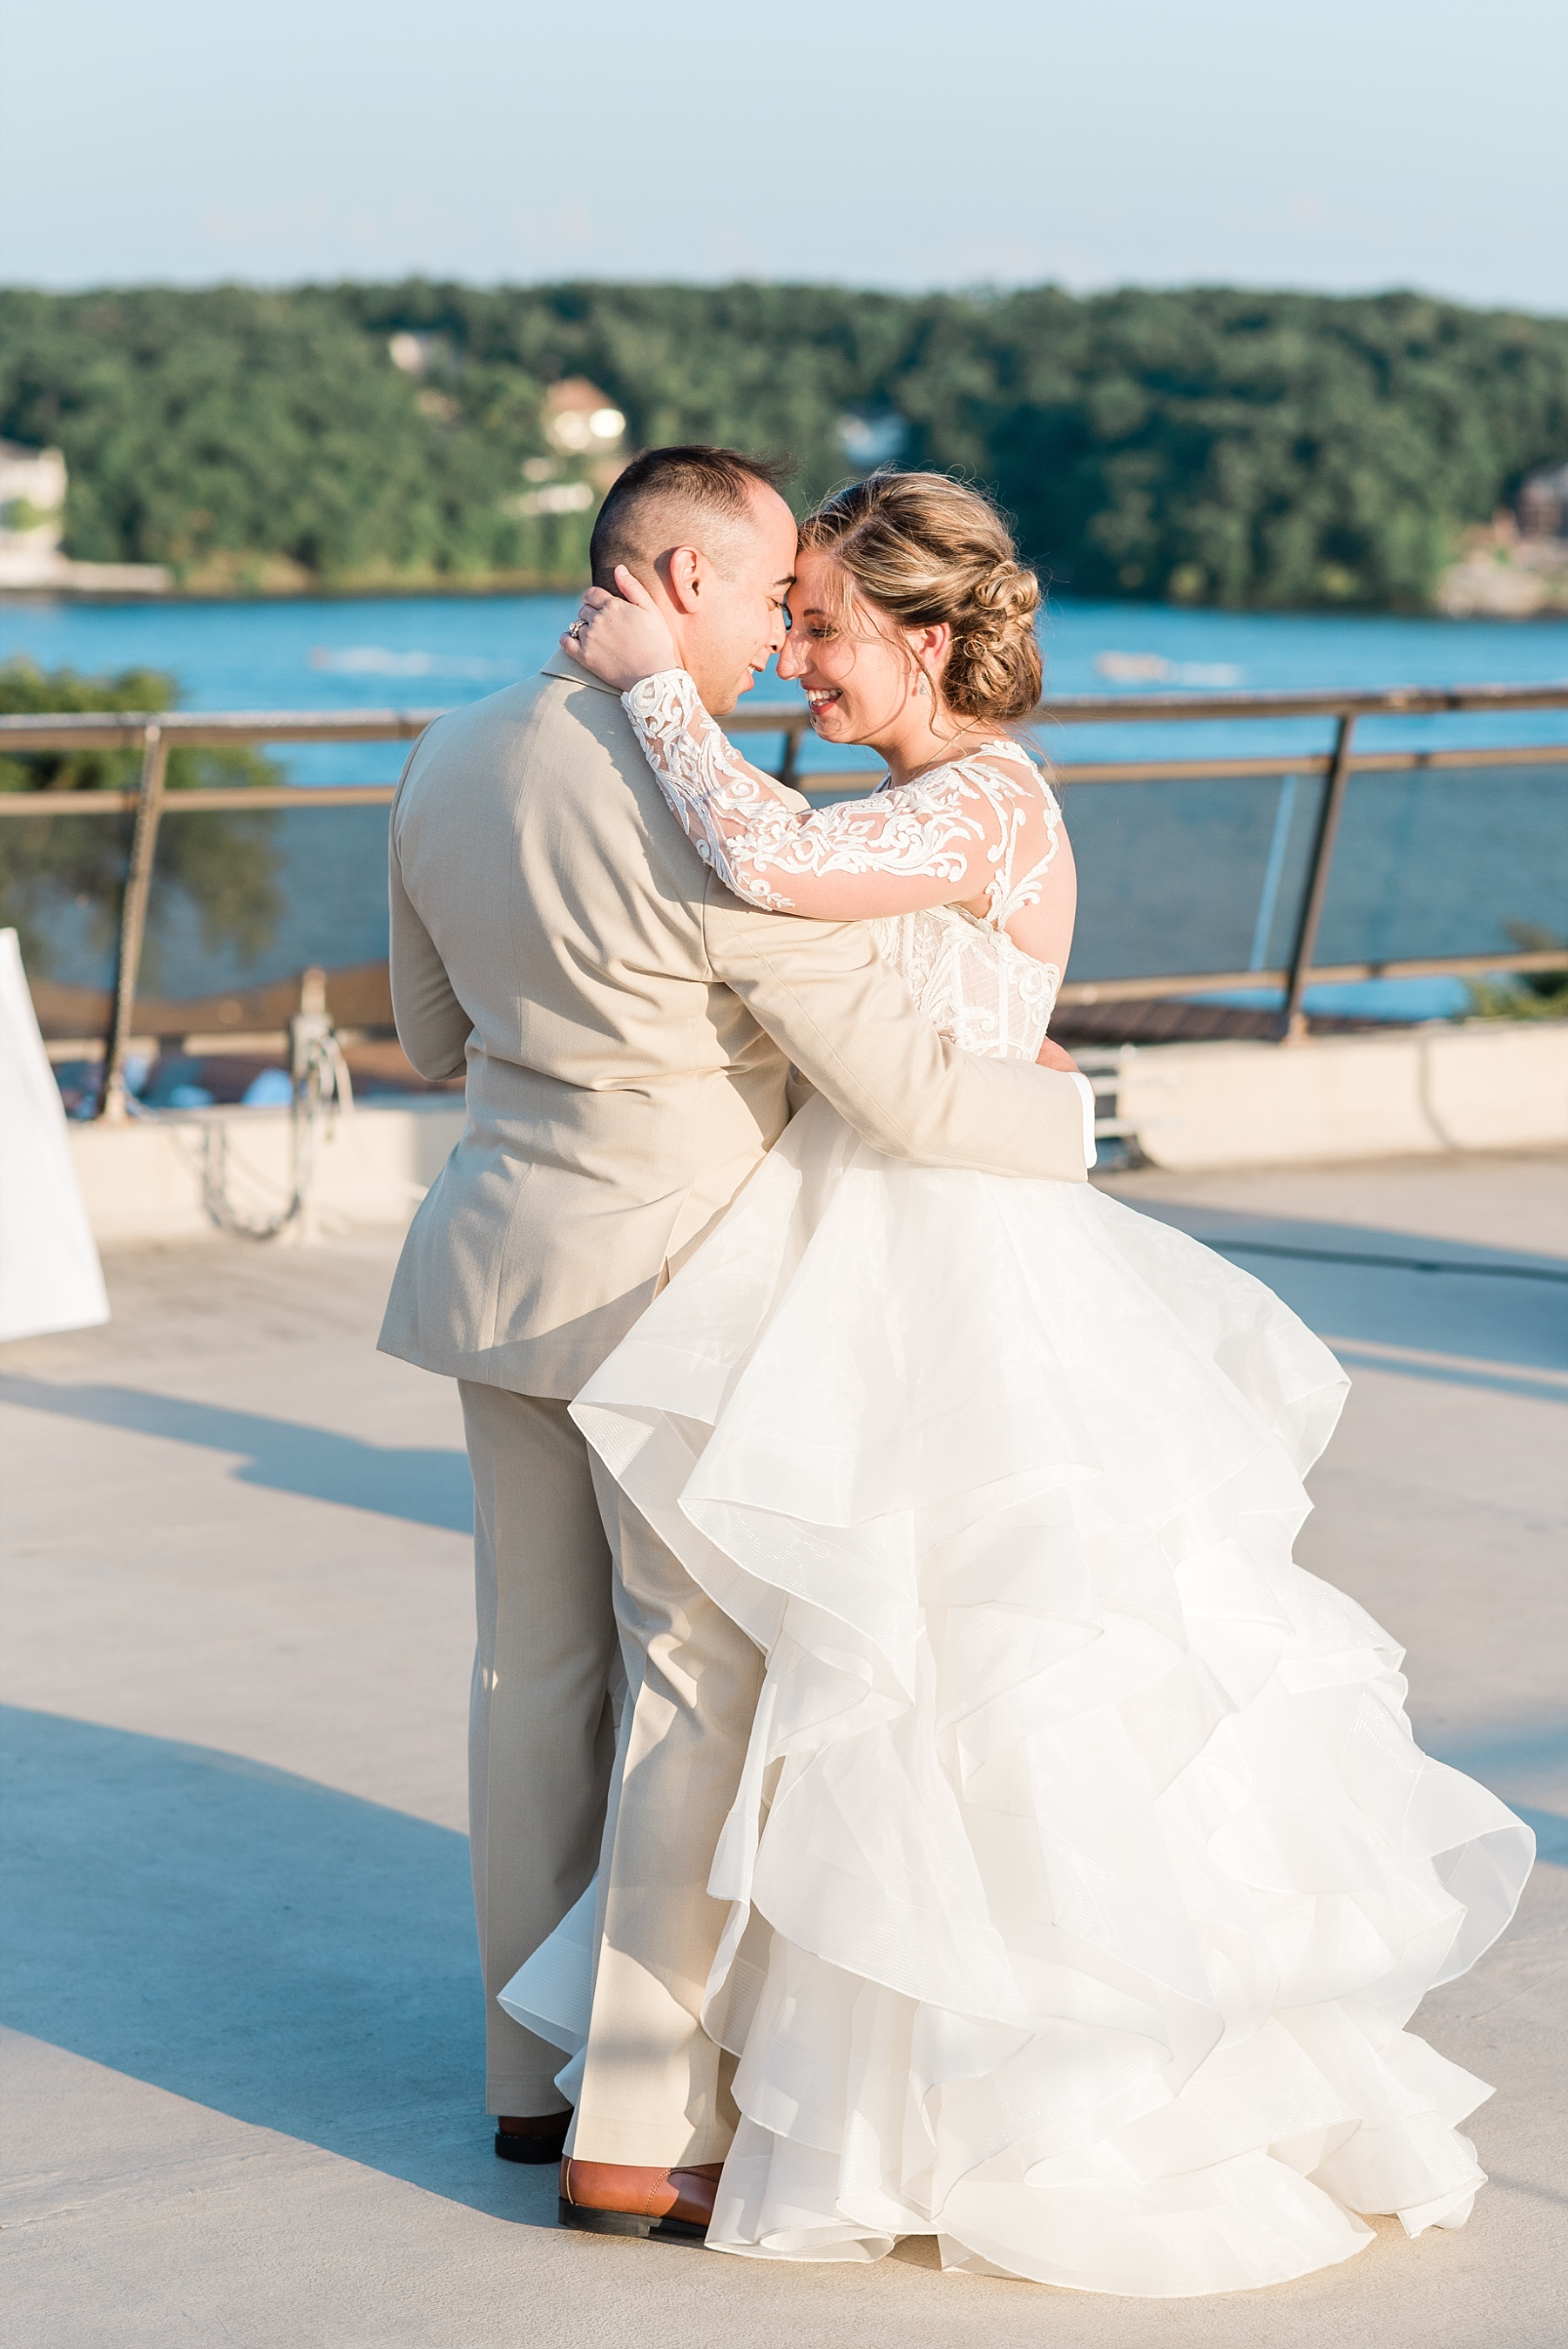 Beachside Sunset Wedding At Lodge Of Four Seasons At Lake Of The Ozarks By Kelsi Kliethermes Photography_0028.jpg